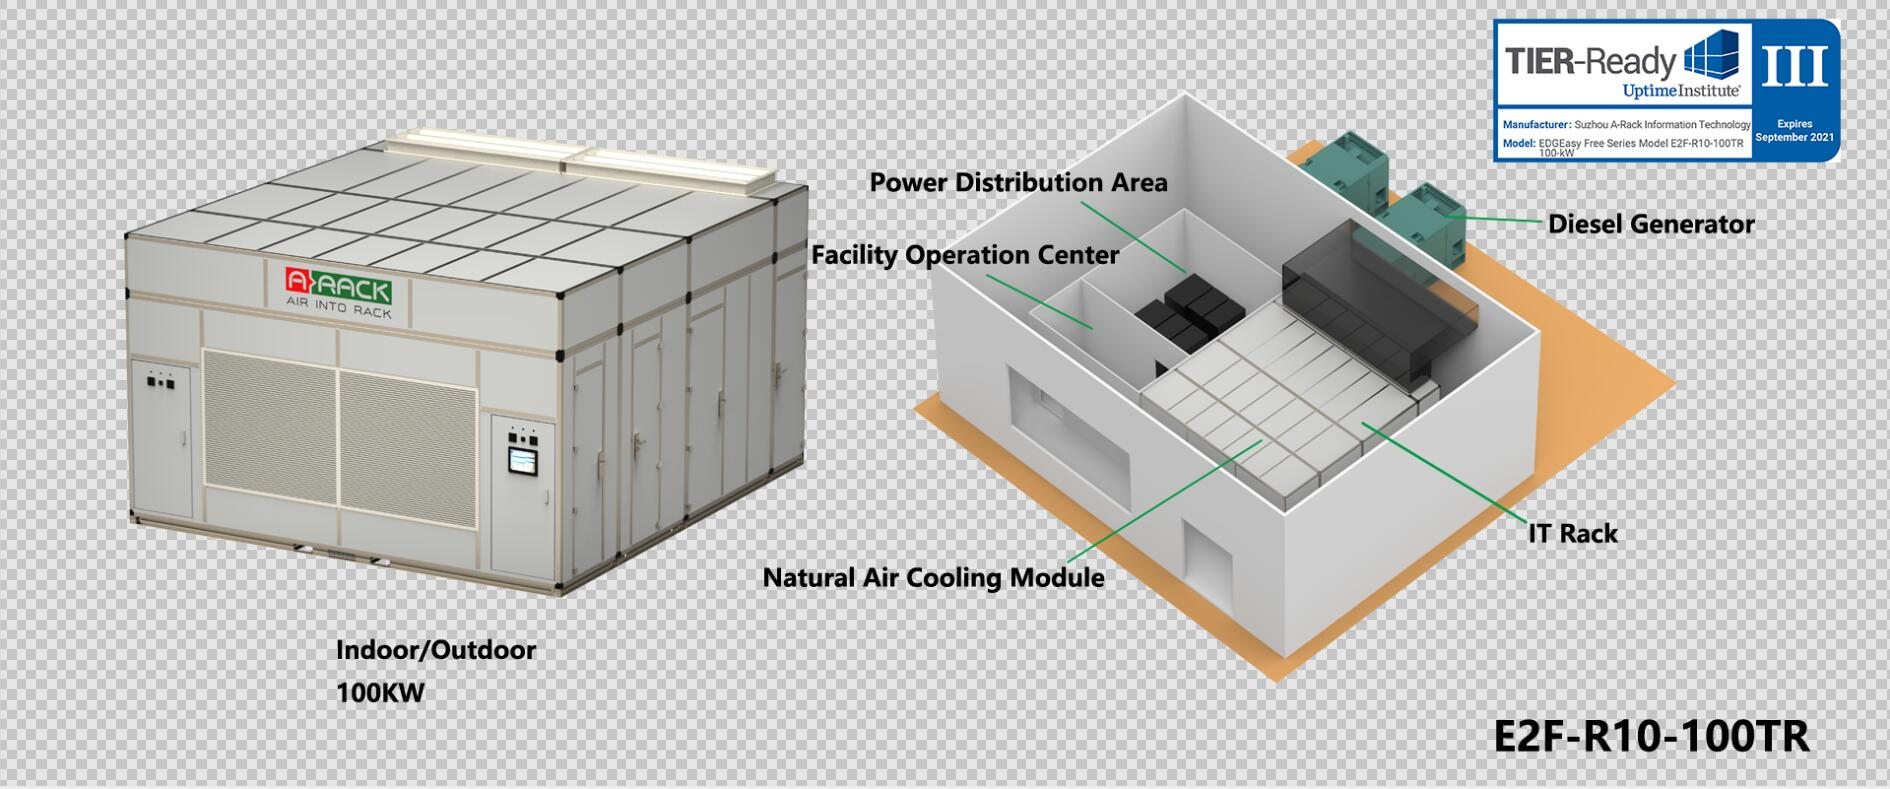 TIER-Ready III Prefabricated Modular Data Center Solution